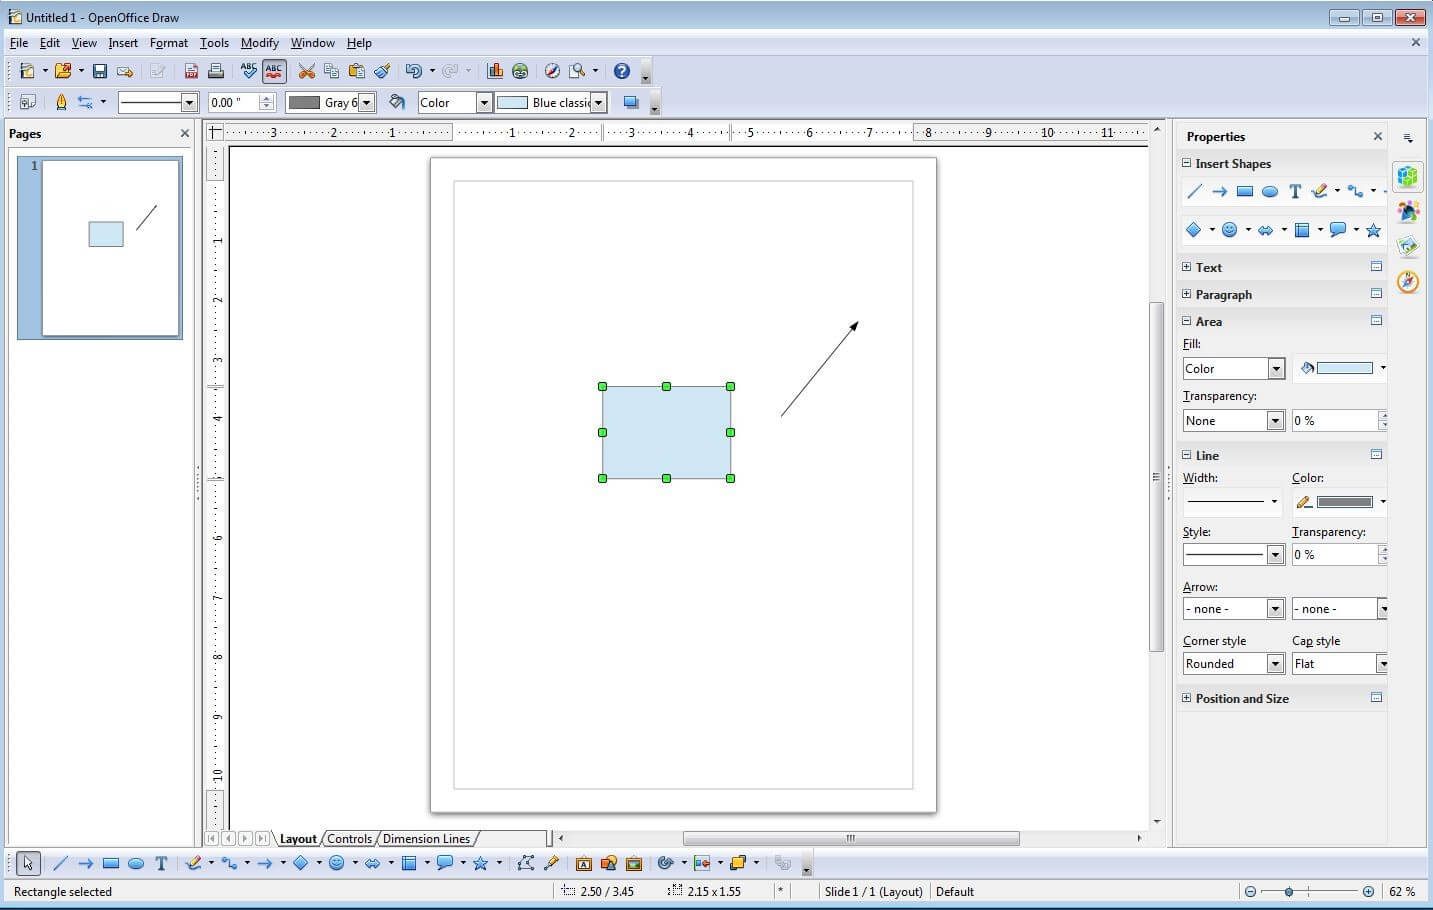 6 Alternatives to Microsoft Visio - 1&1 IONOS